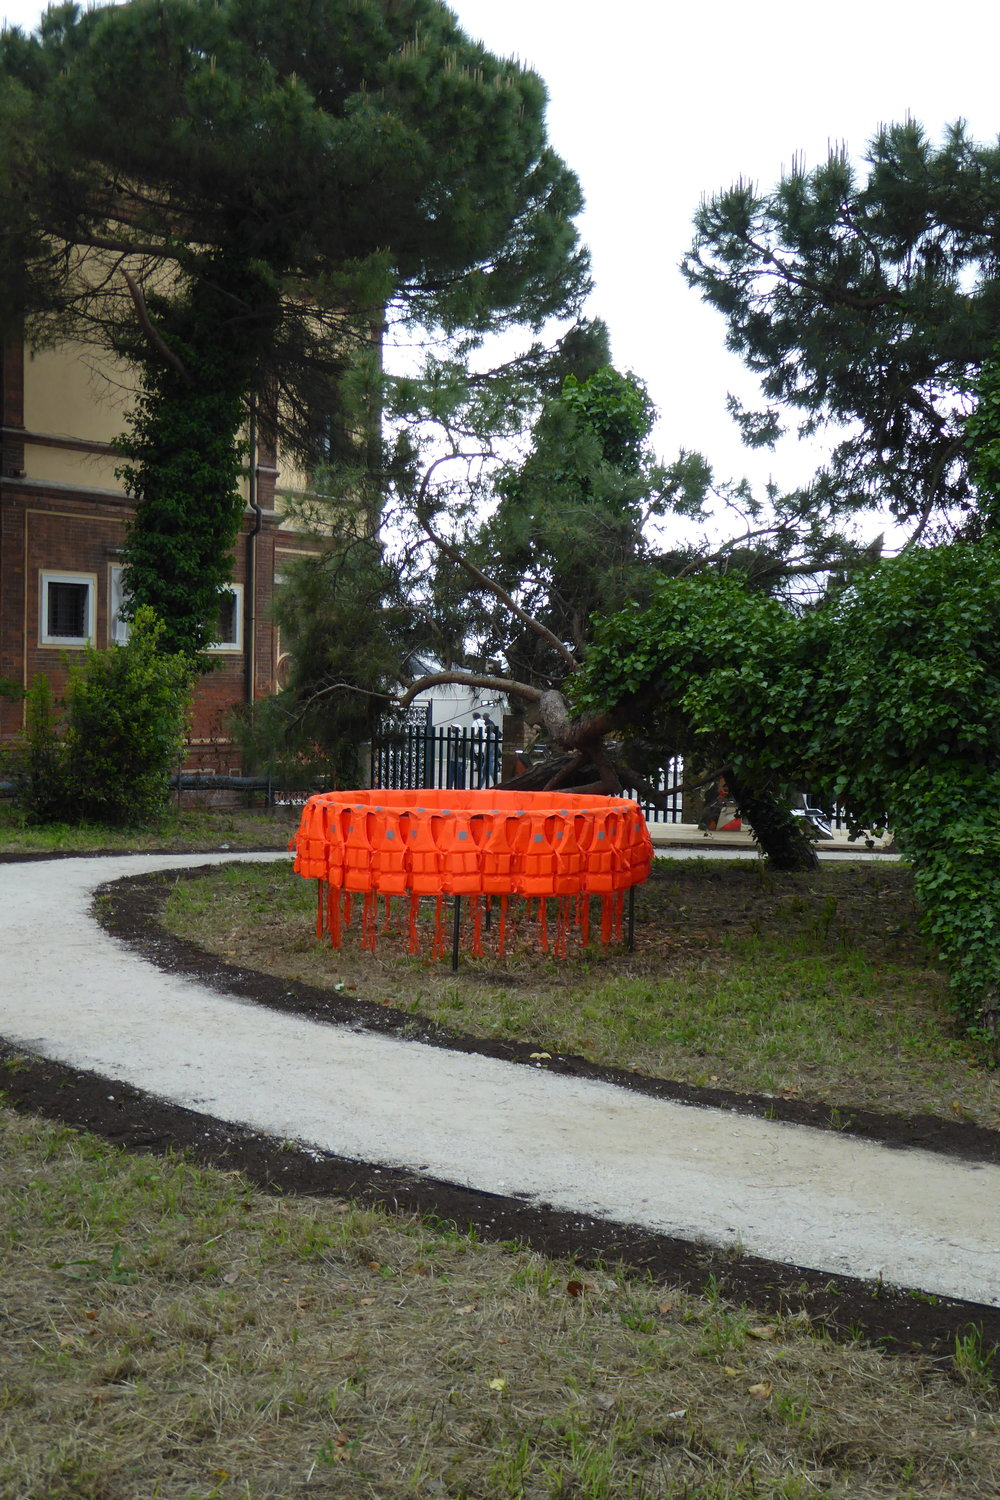 Déplacement (Smuggling Pod) 2017 / Life-jackets, Steel / 200 cm diameter x 100 cm / Installation Giardini Marinaressa, Venice ITALY